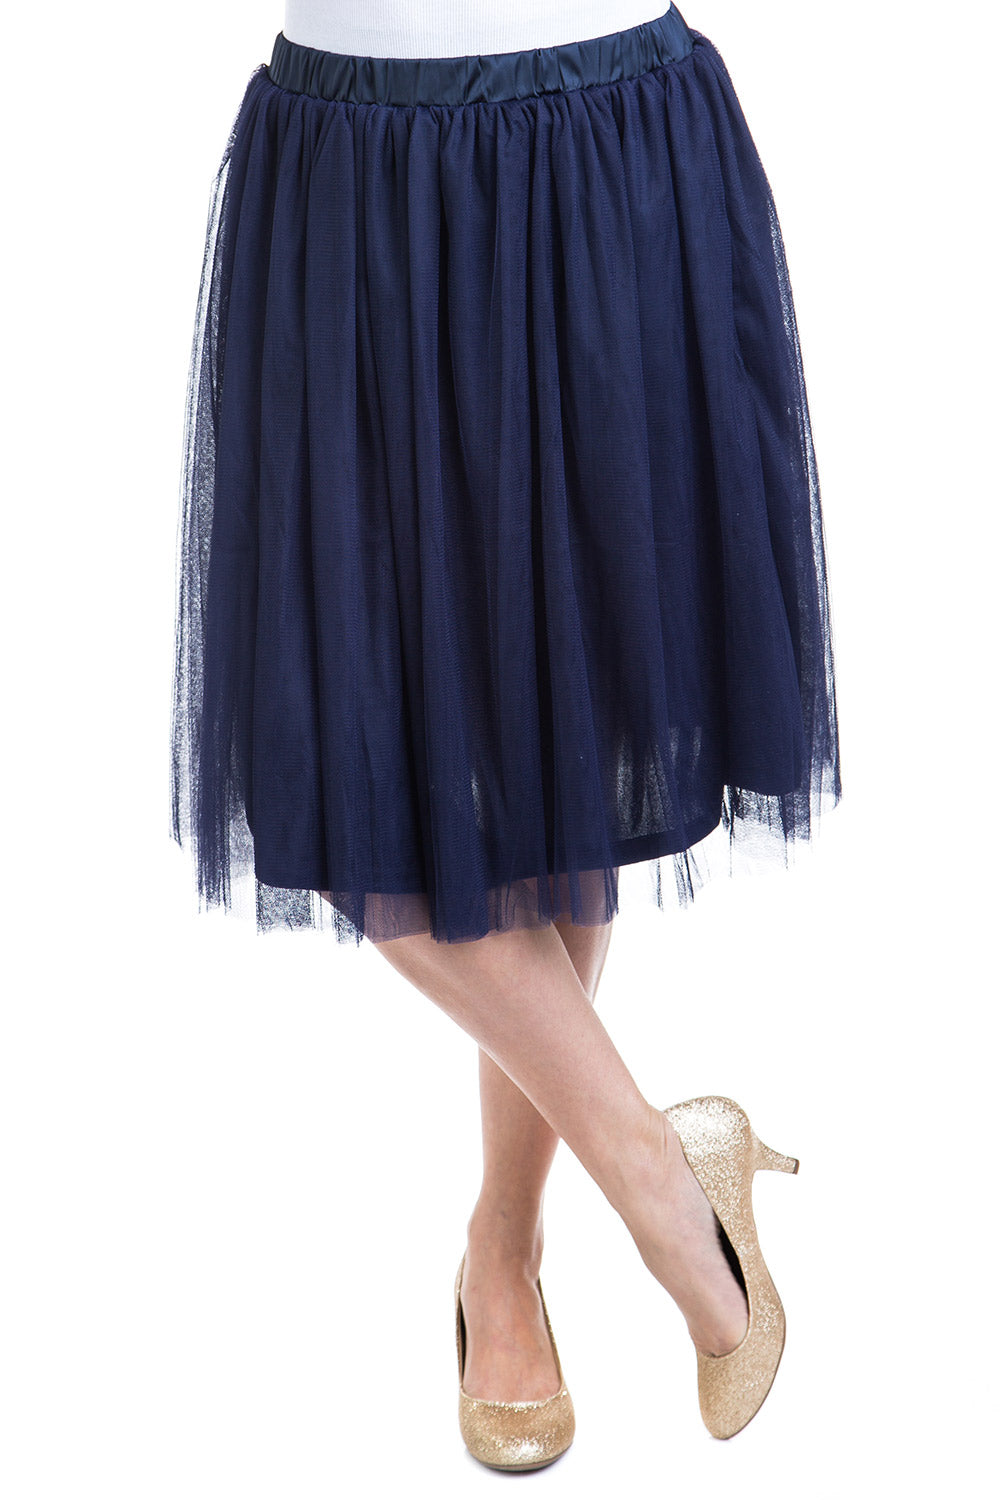 Type 1 Navy Tutu Skirt